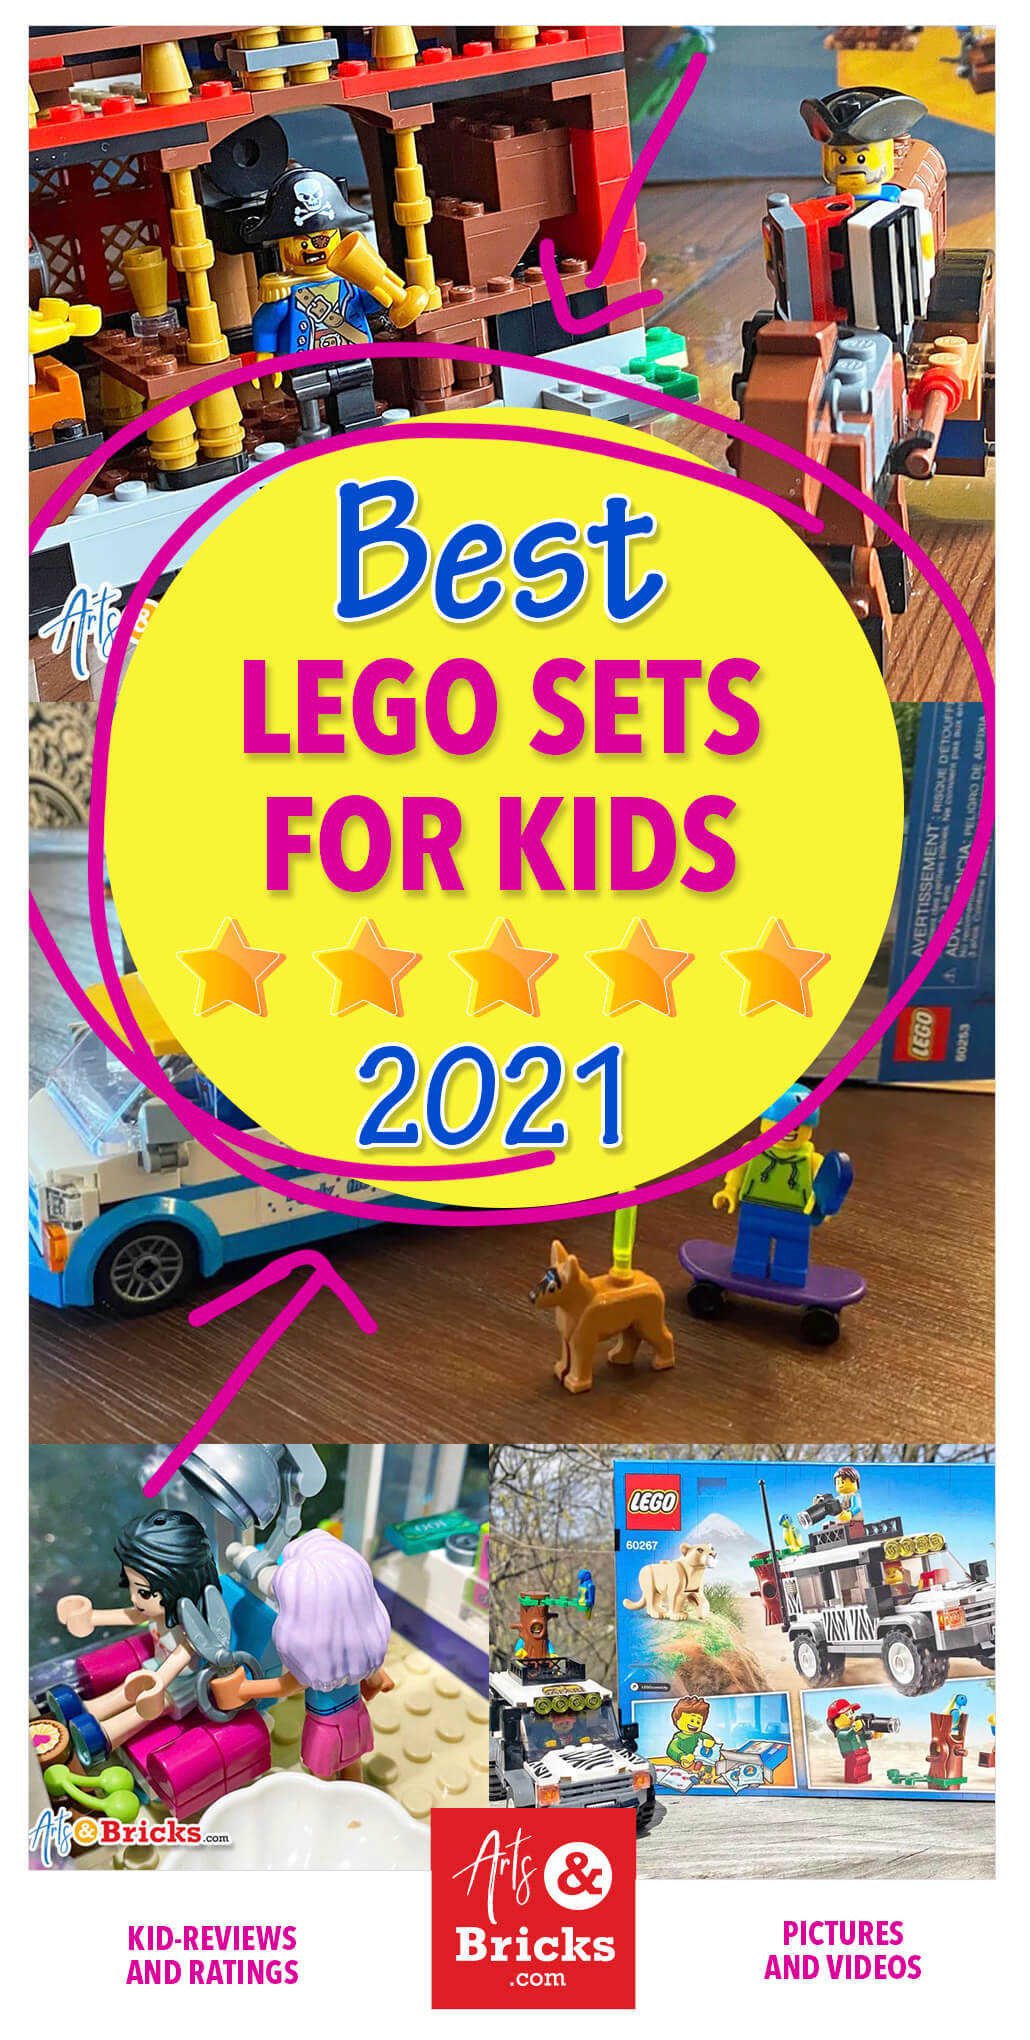 Explore our favorite LEGO sets for kids ages 5 to 12 available for purchase in 2021. Our kids have built these sets and adamantly recommend them!